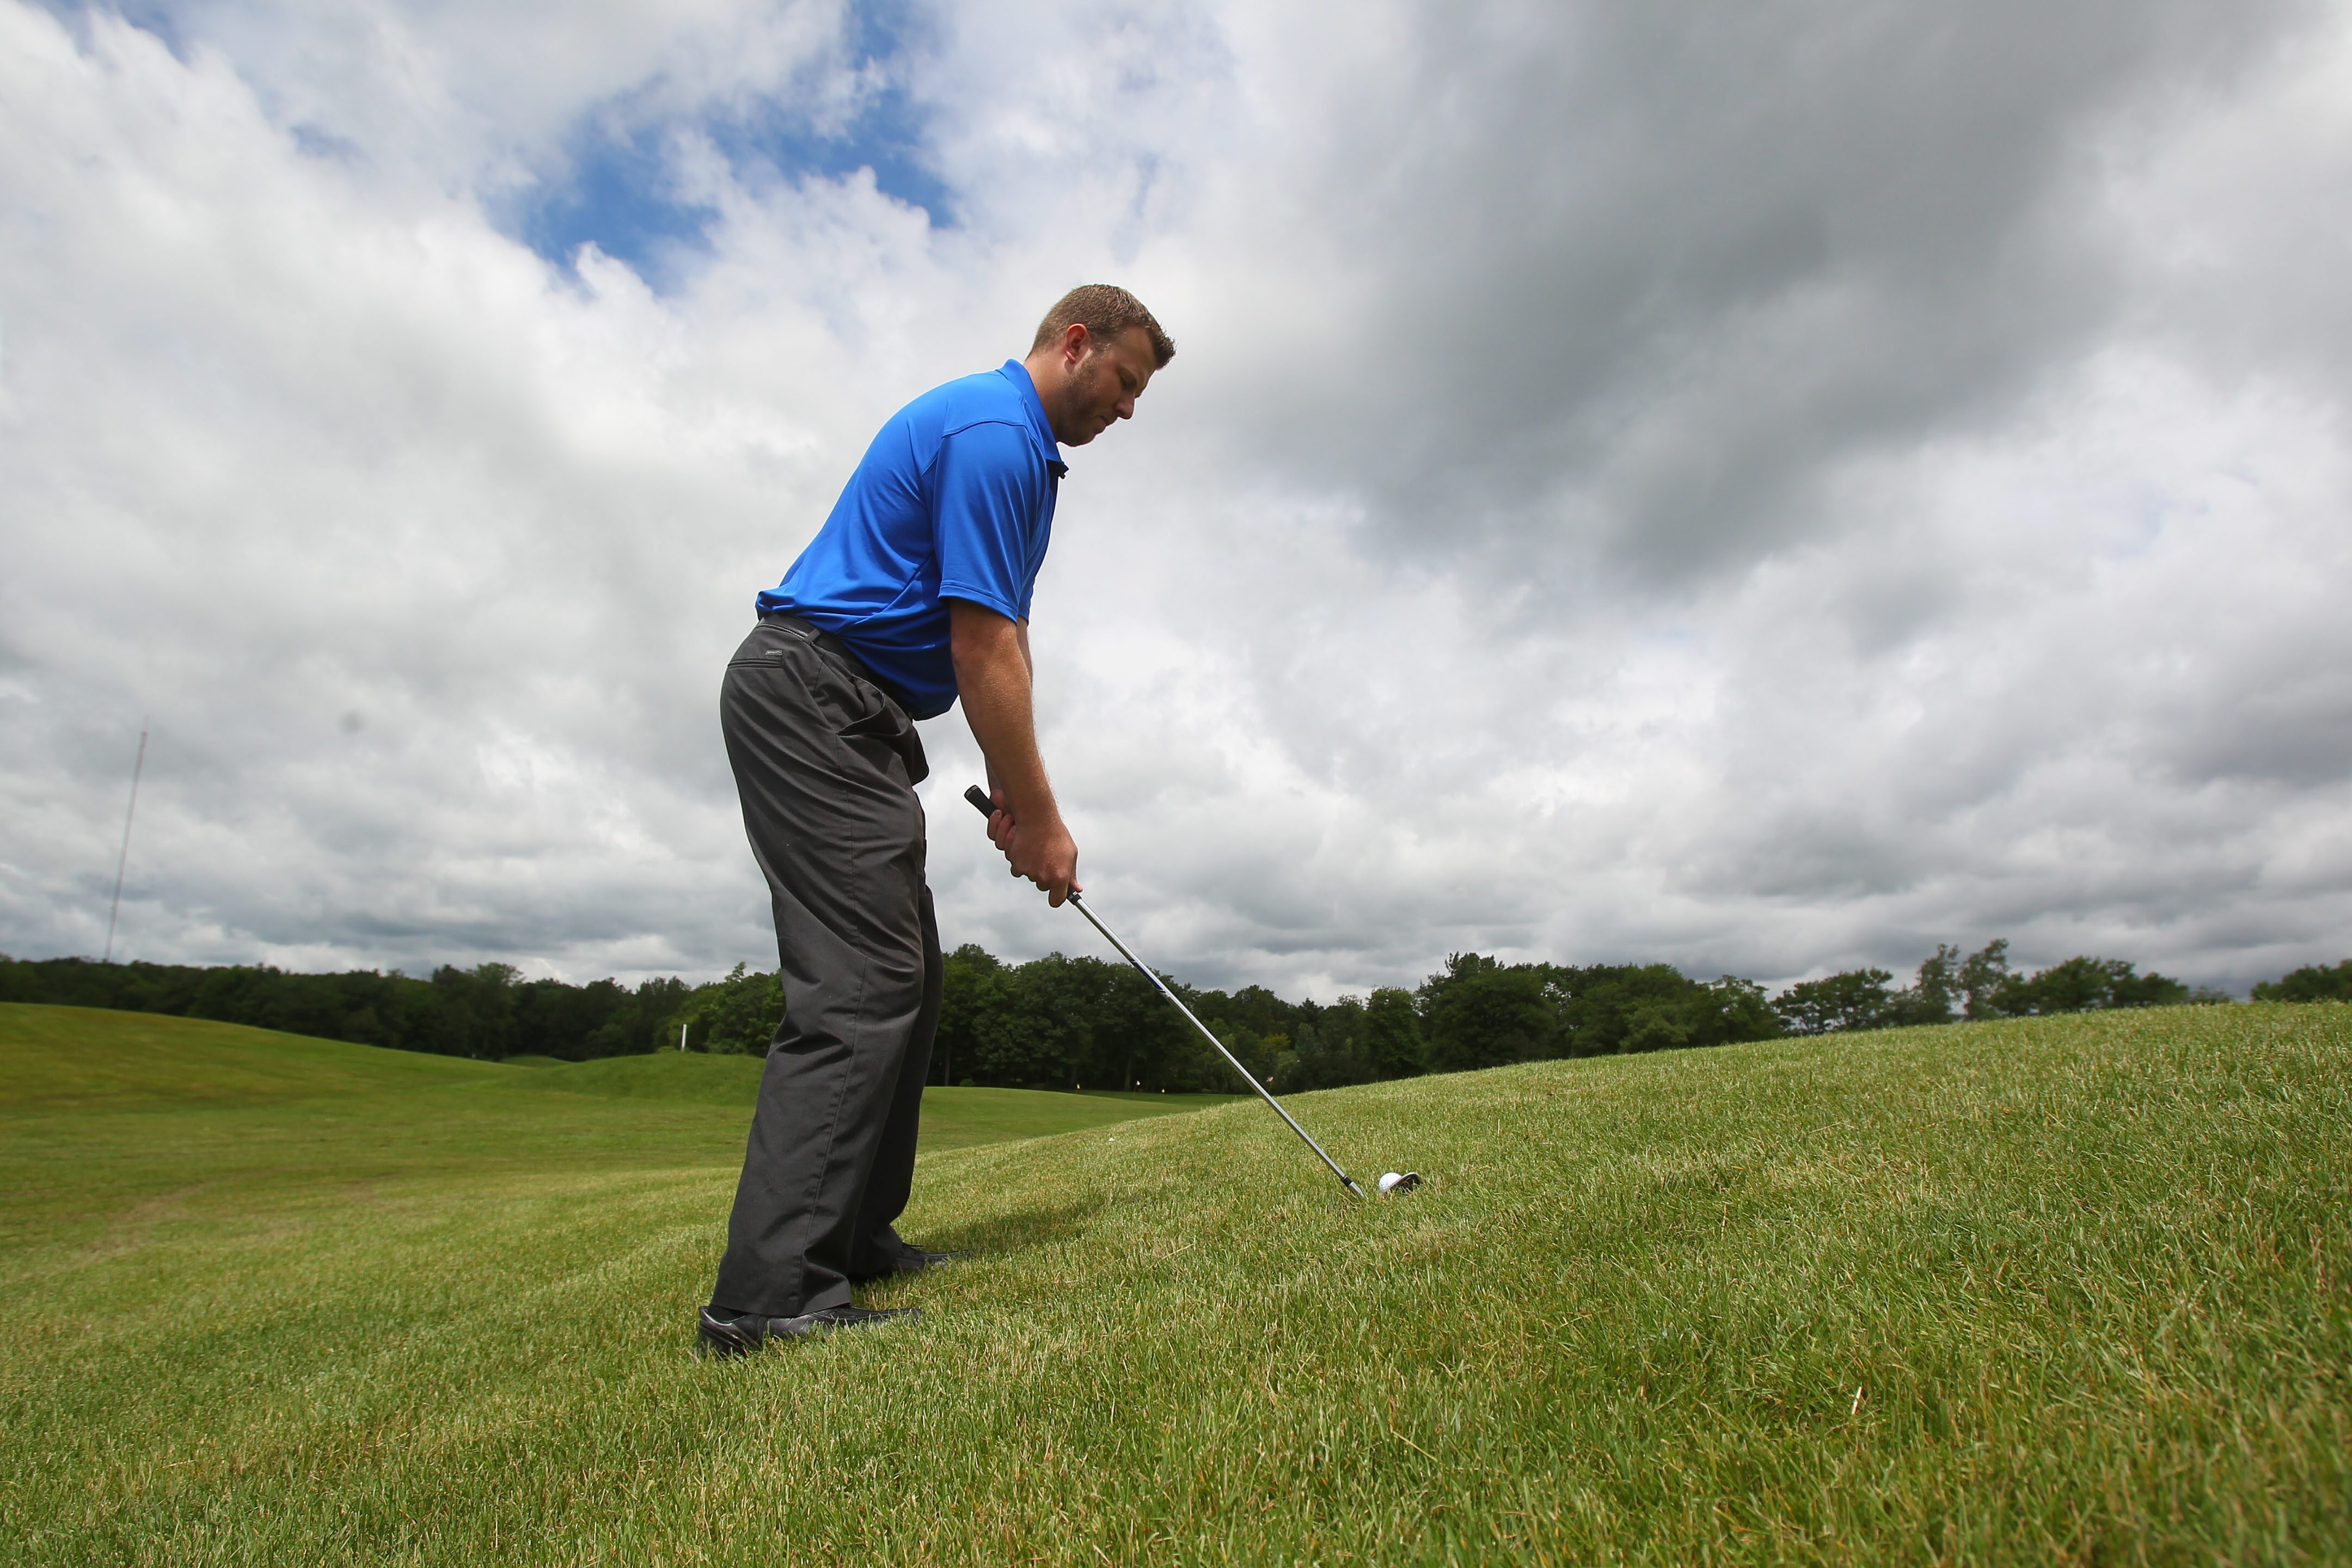 River Oaks Golf Club Head Professional Matt Clark demonstrates how to hit a side-hill lie at the club on Grand Island Tuesday.